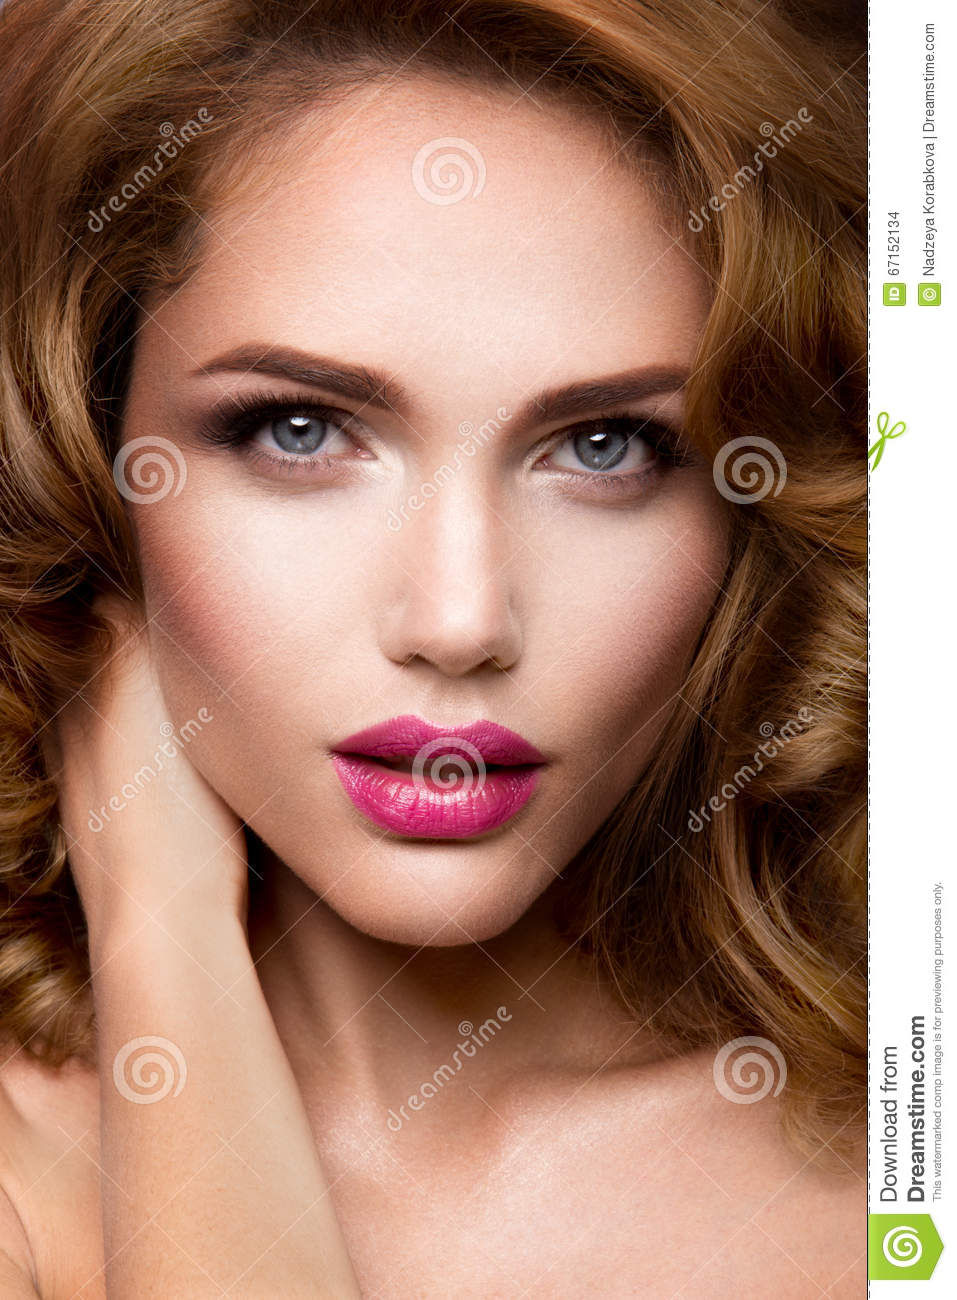 make up  glamour portrait of beautiful woman model with